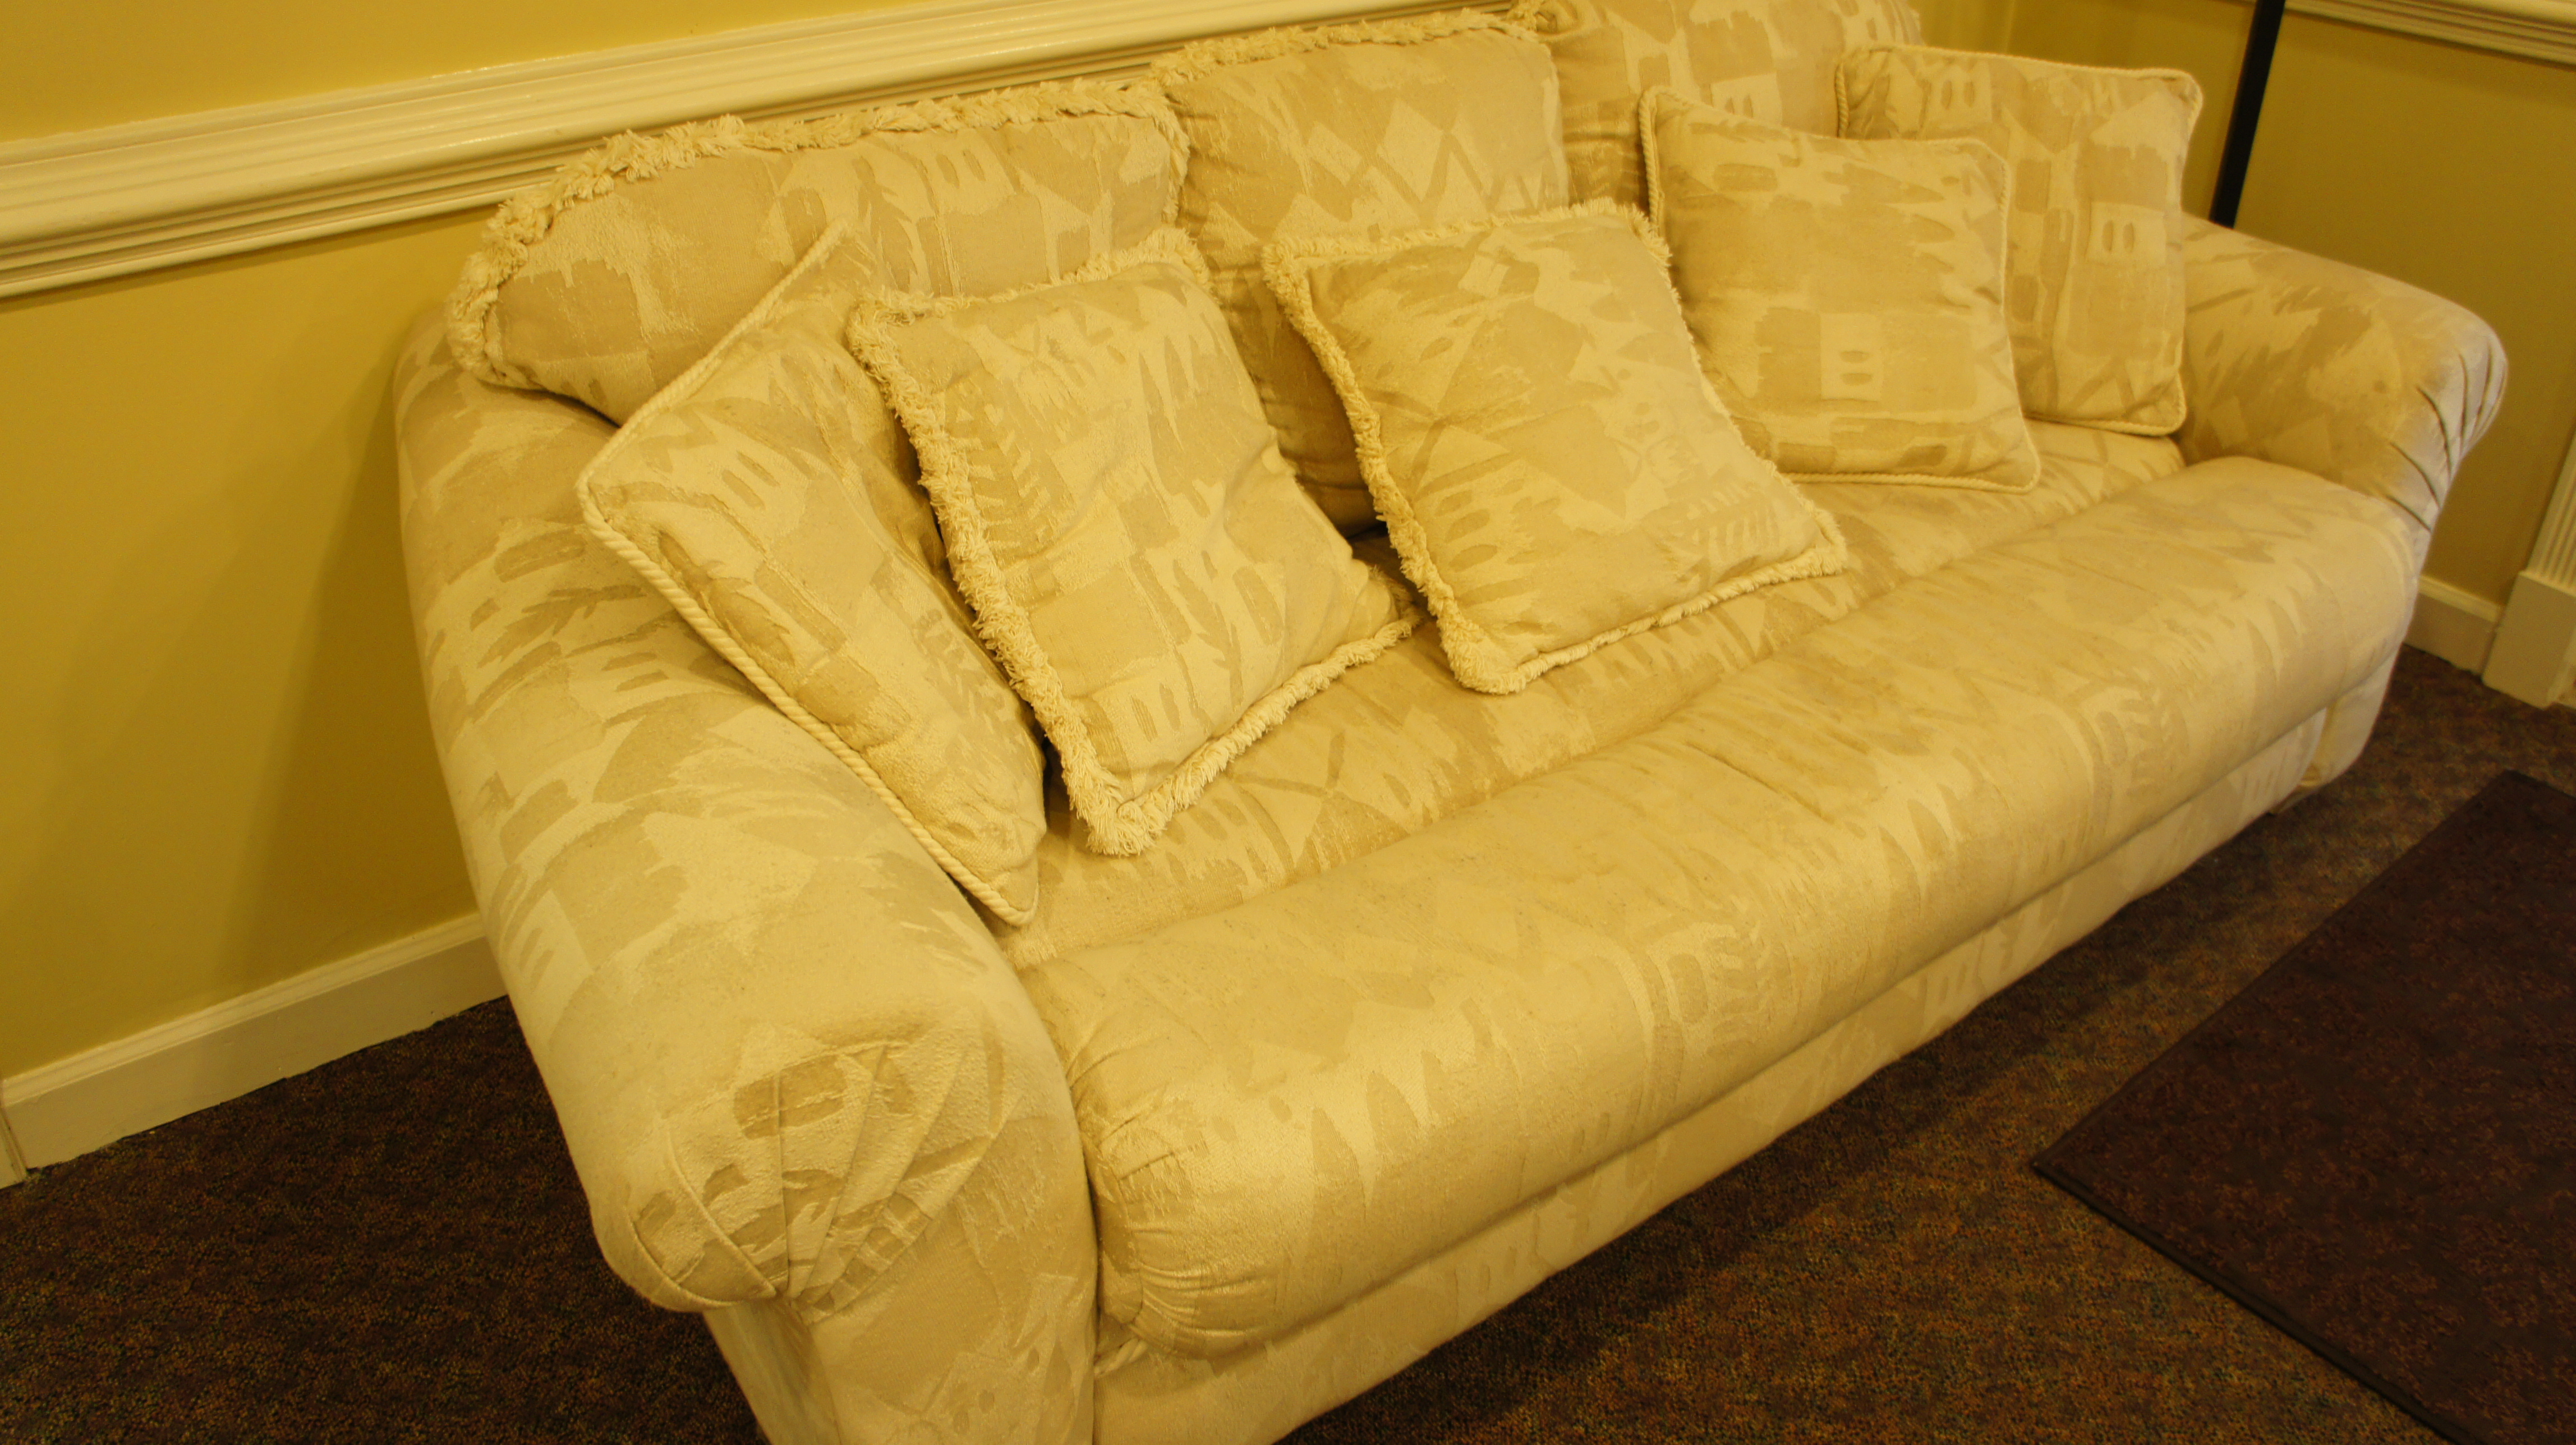 sofa liquidation sale down pillow inserts office couch loveseat and glass coffee table set alan